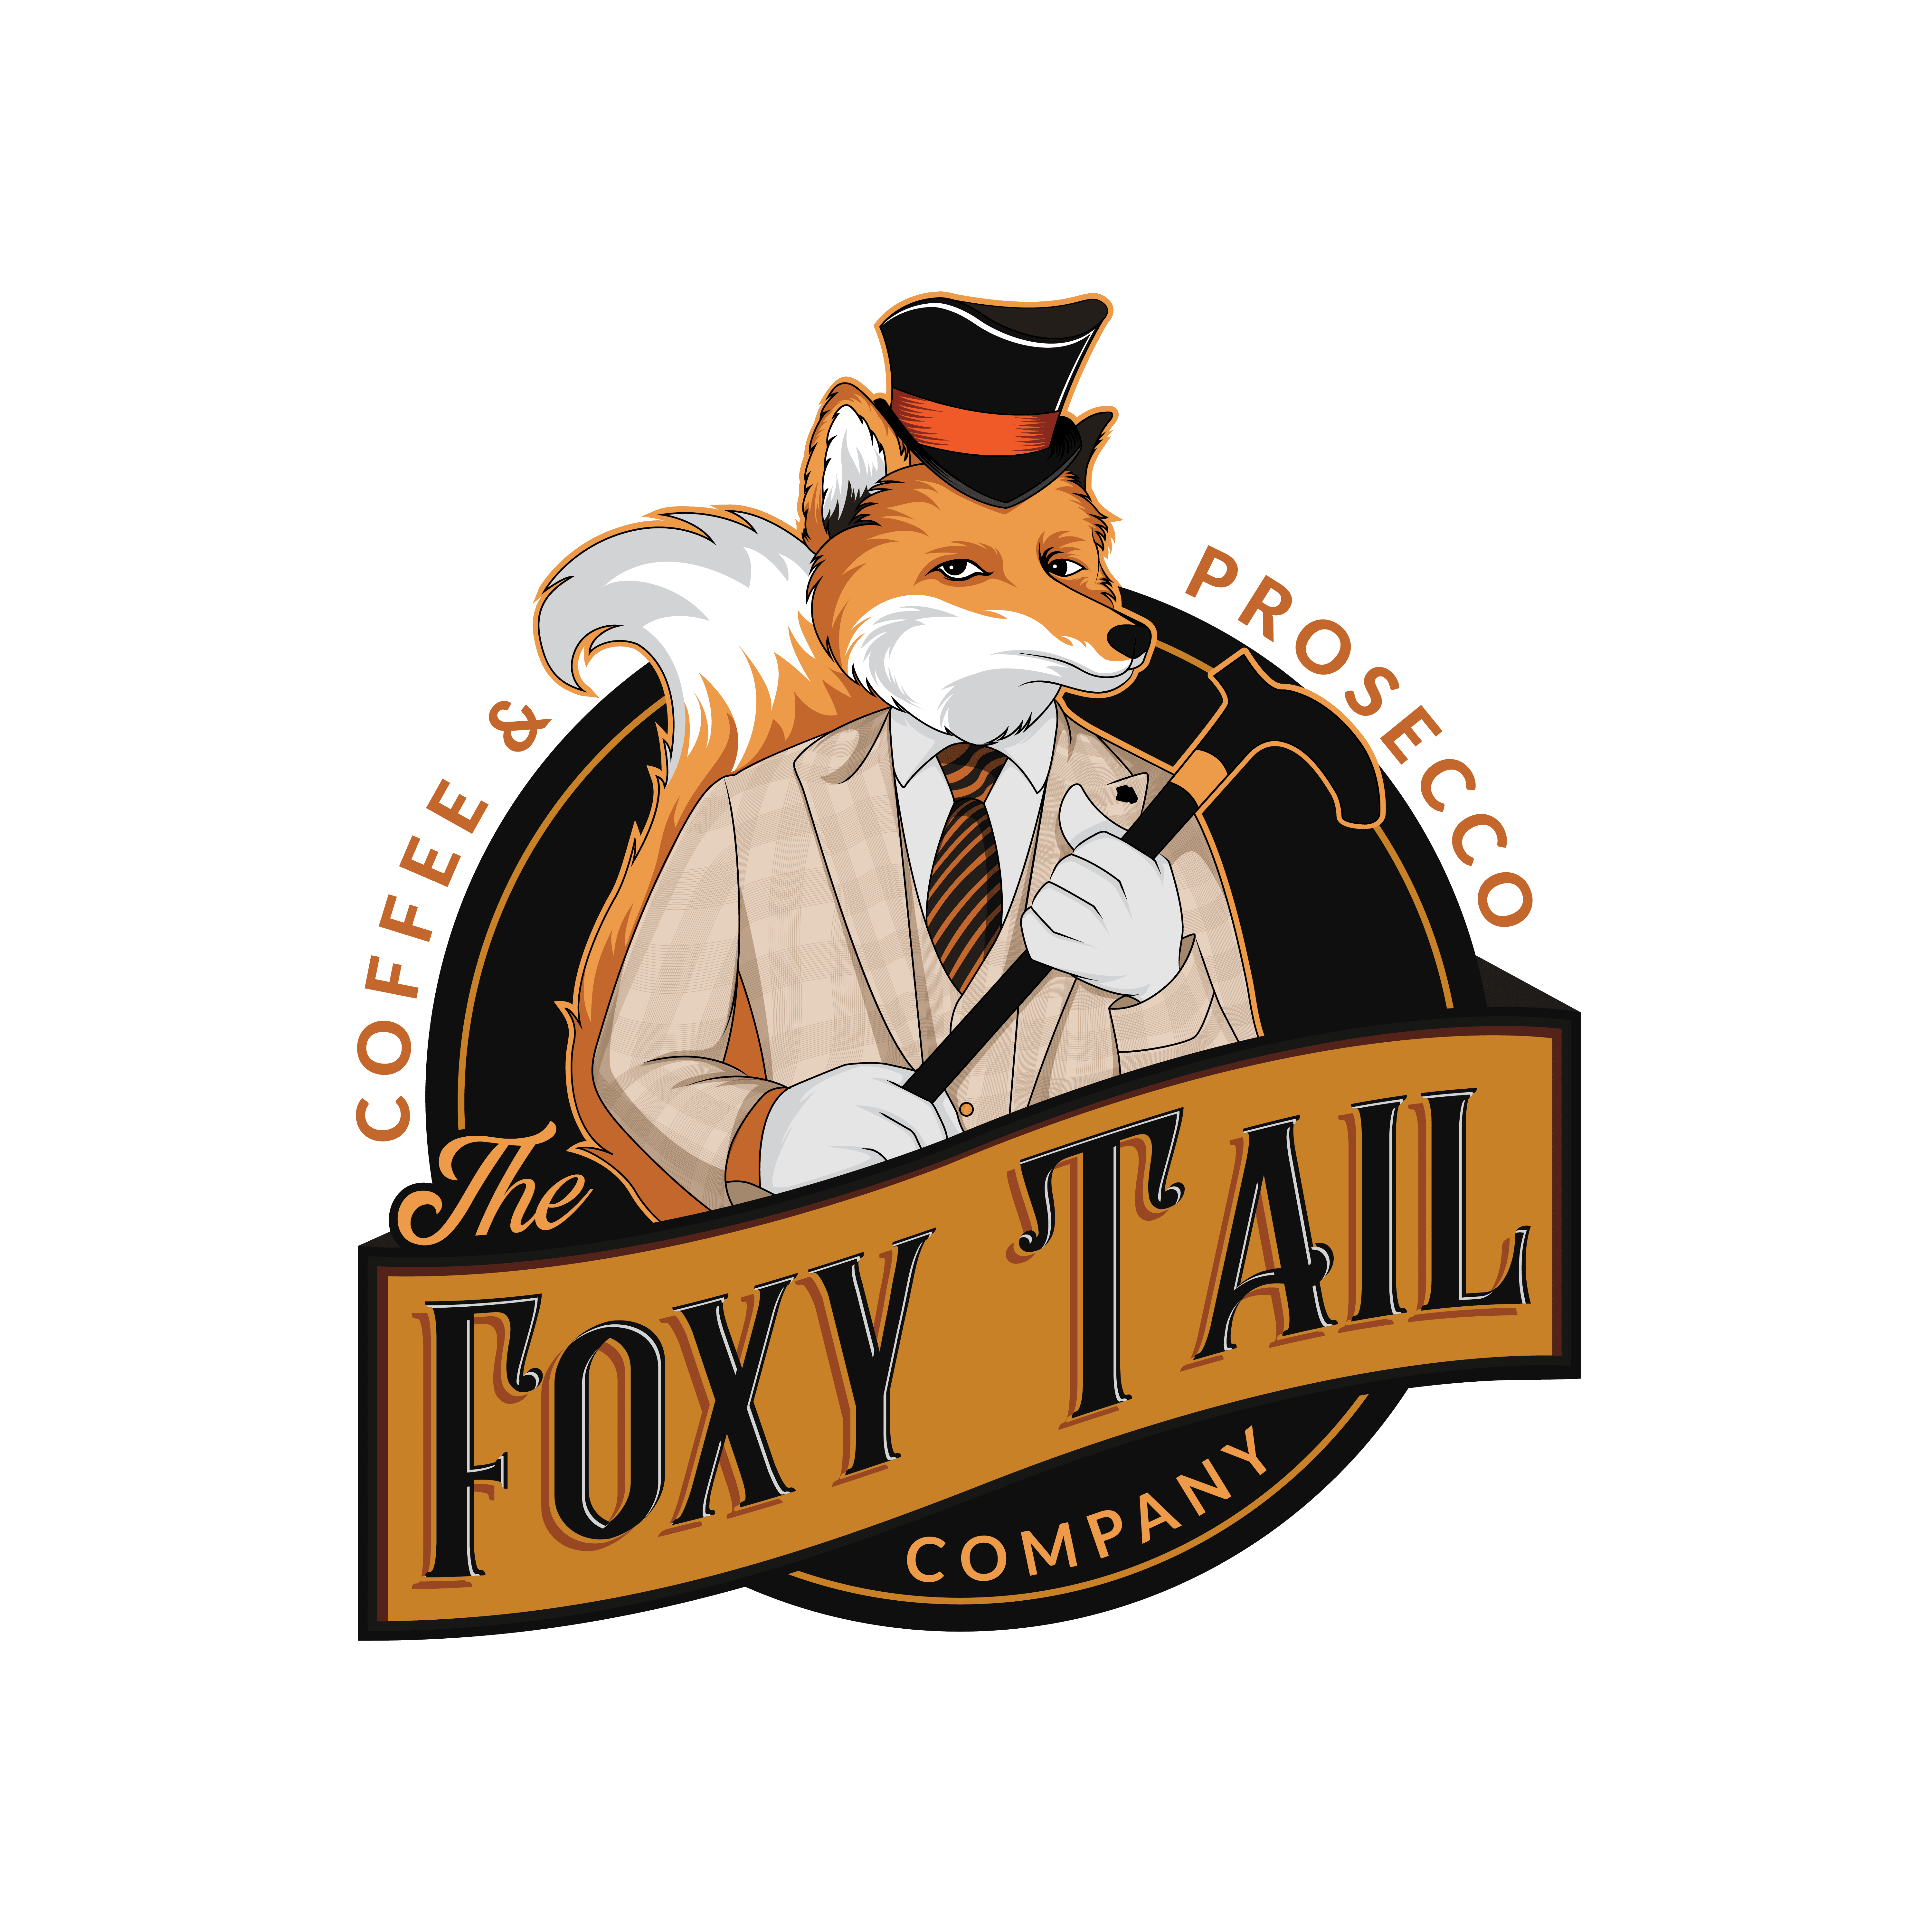 The Foxy Tail